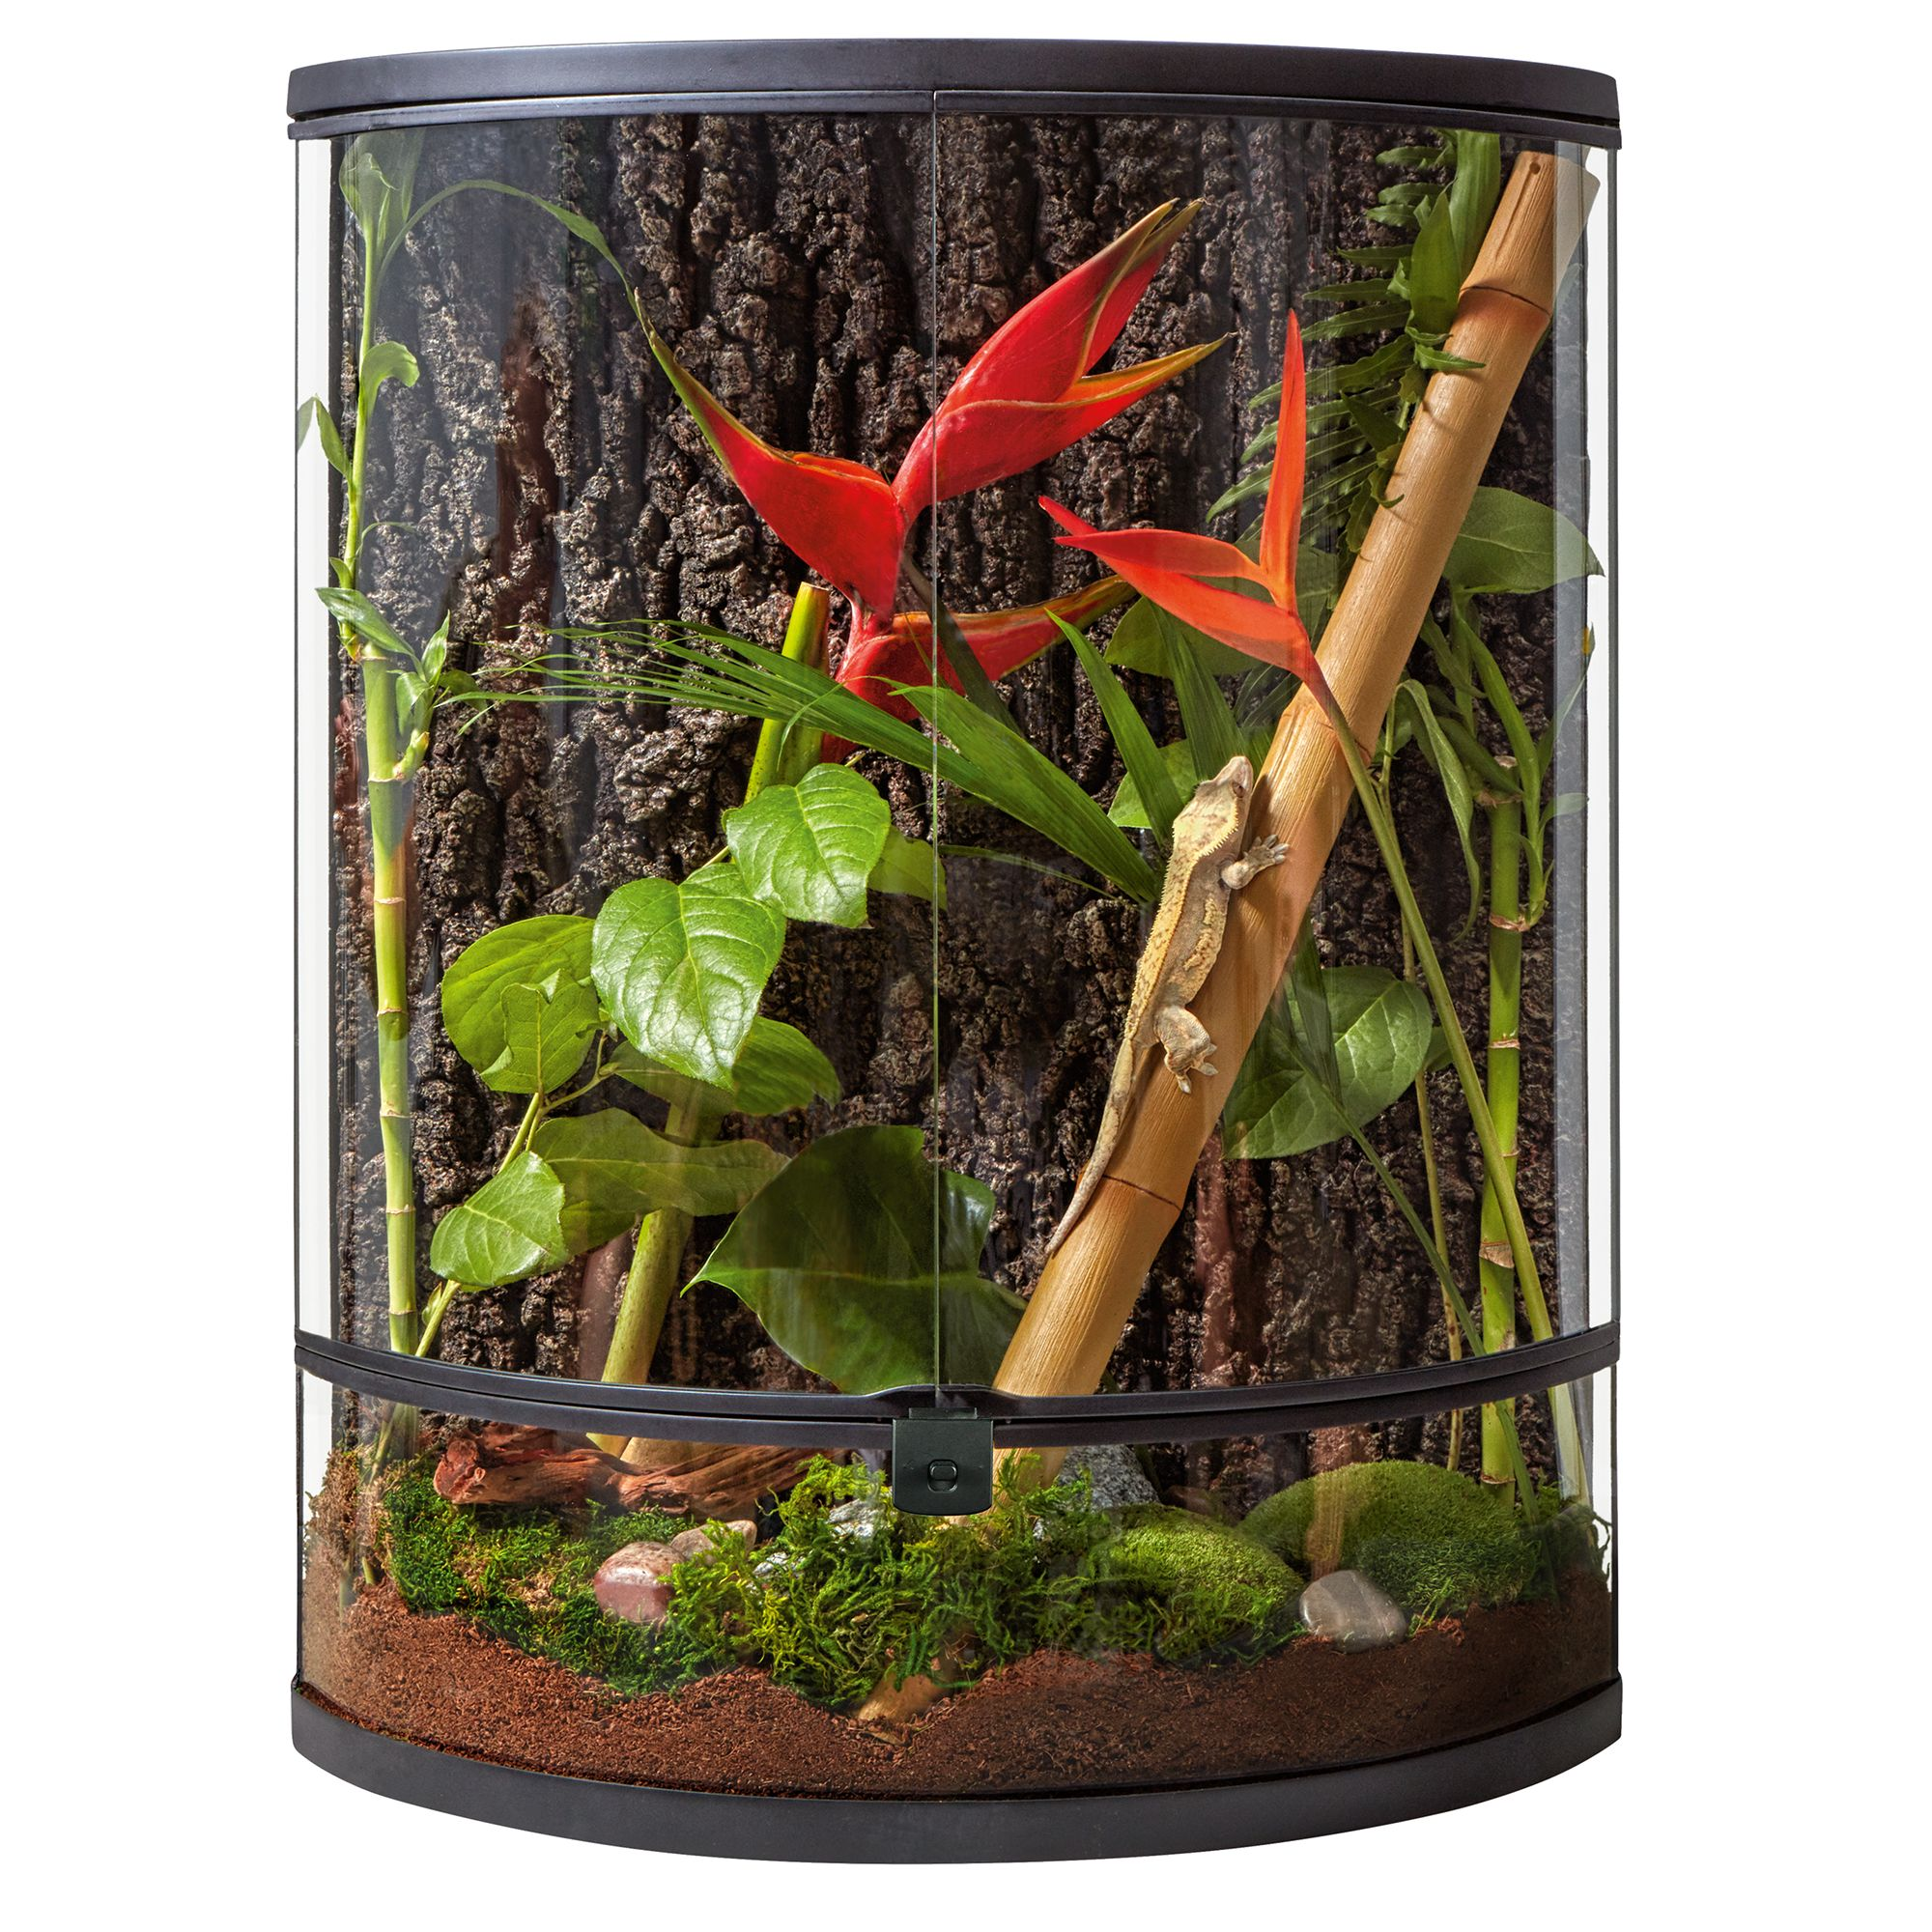 Thrive Tropical Reptile Vertical Crescent Terrarium 20 Gallon Reptile Terrariums Petsmart